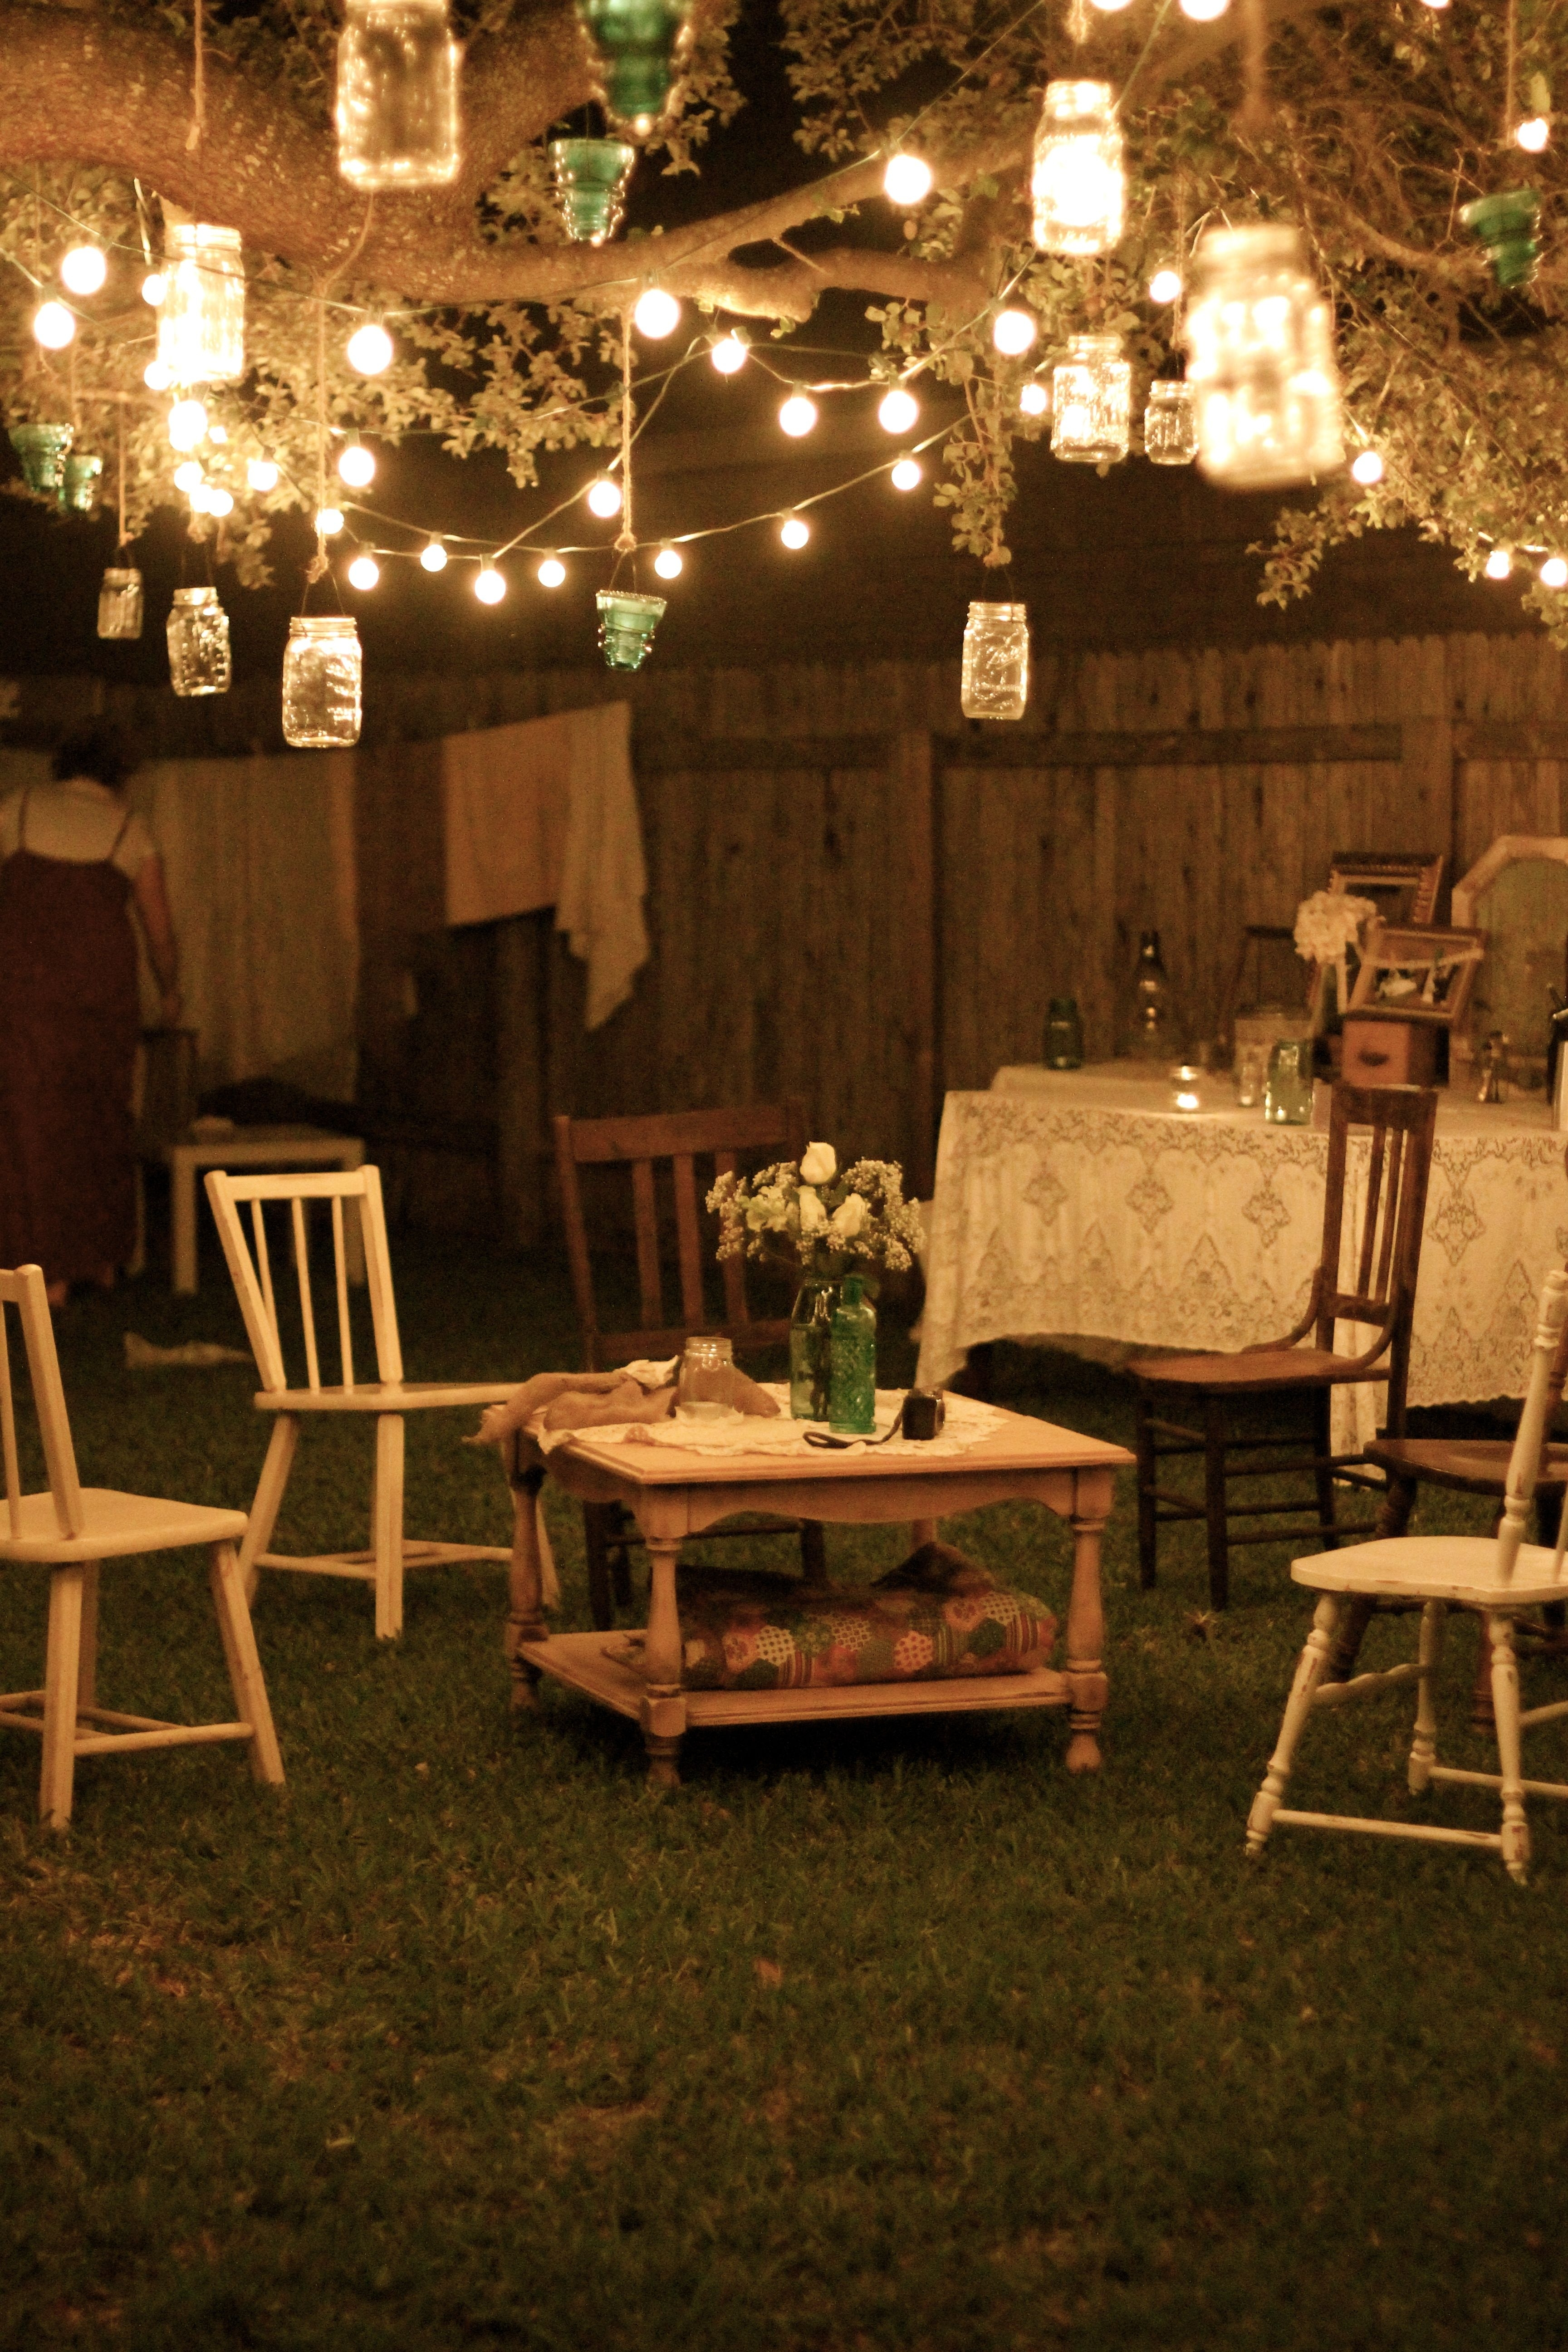 Garden Party At Night; Lanterns Hang From Tree Branches, And Rustic for Outdoor Lanterns For Parties (Image 6 of 20)